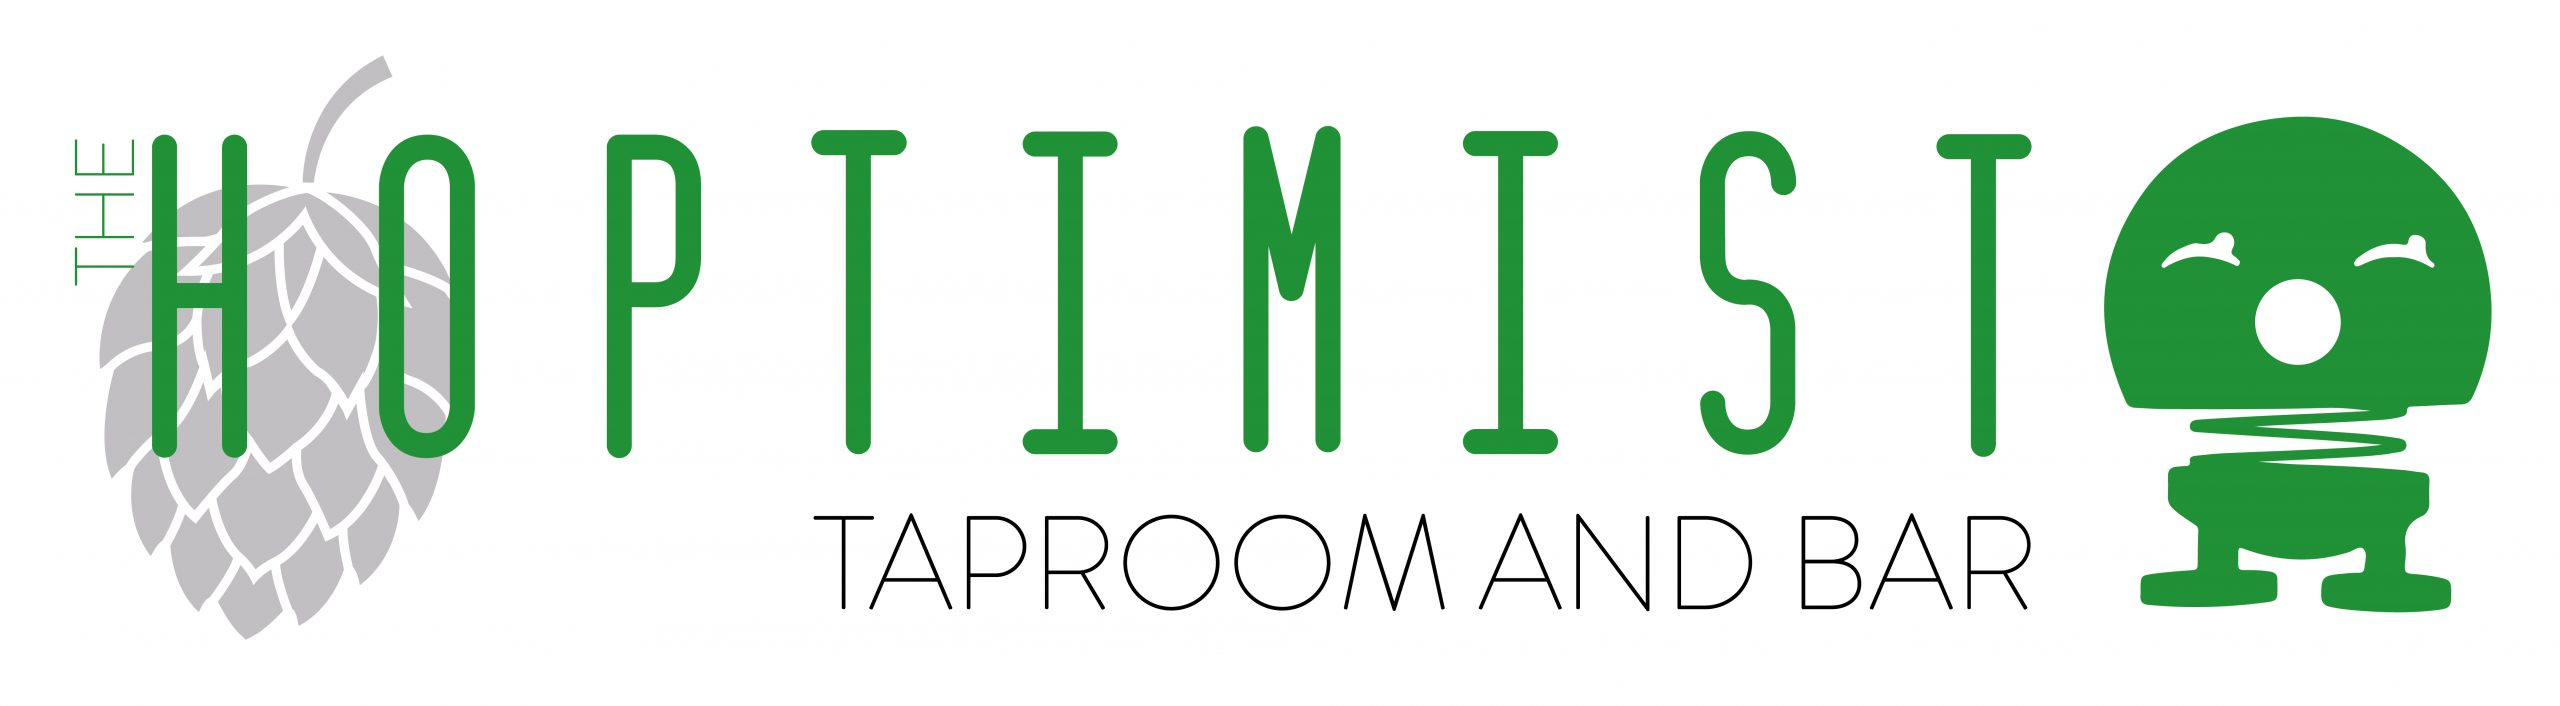 The Hoptimist Taproom and Bar